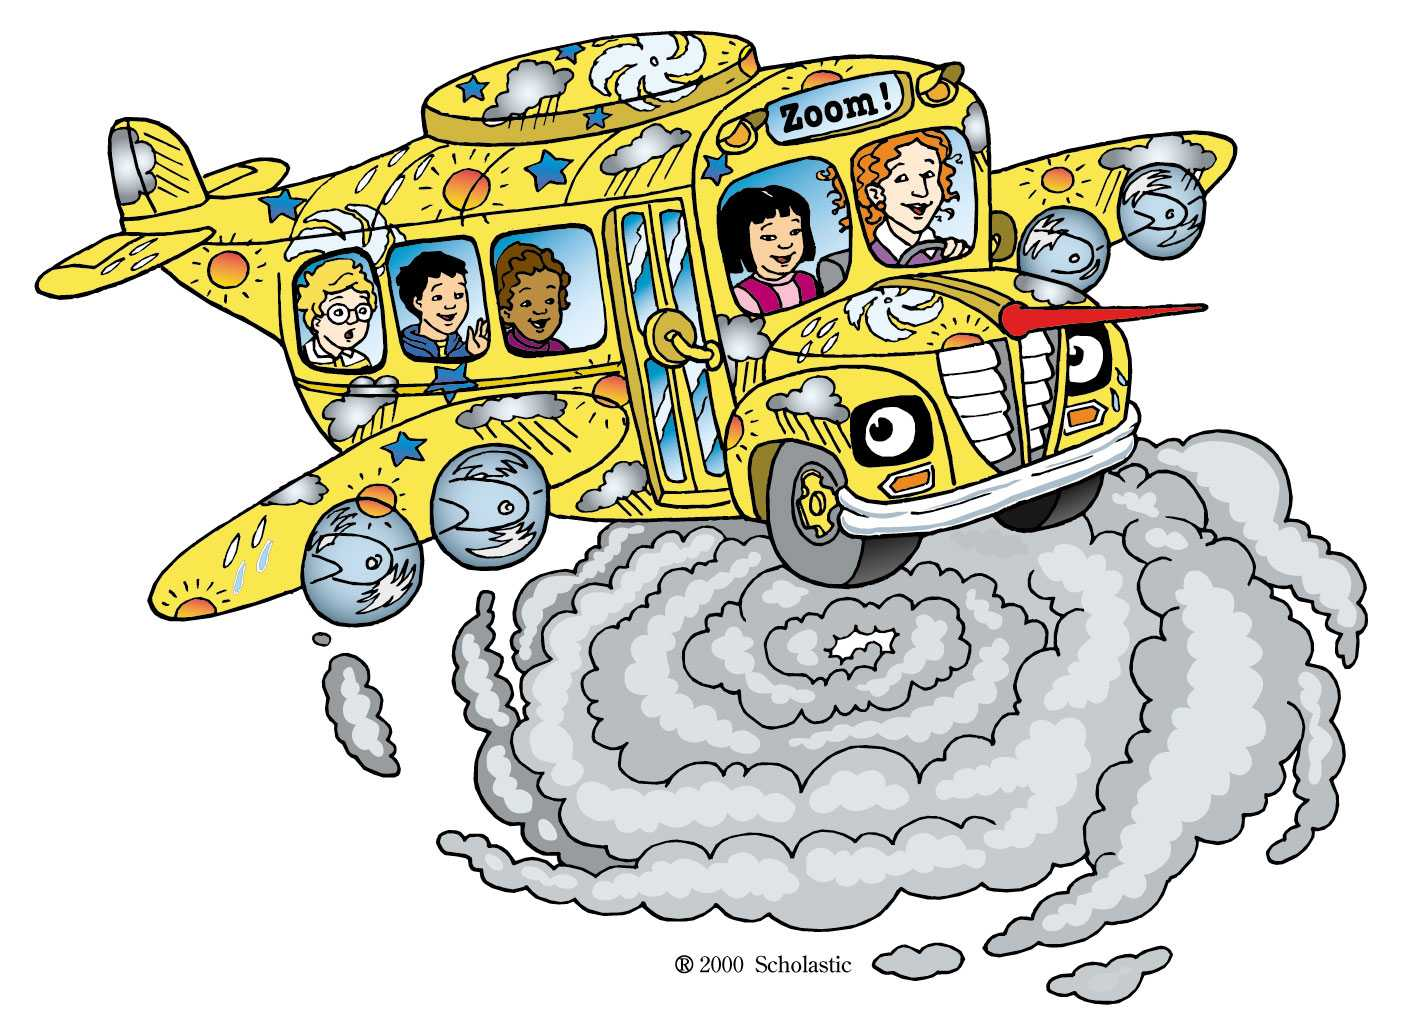 Magic school bus coloring pictures - Take Chances Make Mistakes Get Messy The Magic School Bus Reboot Is Happening